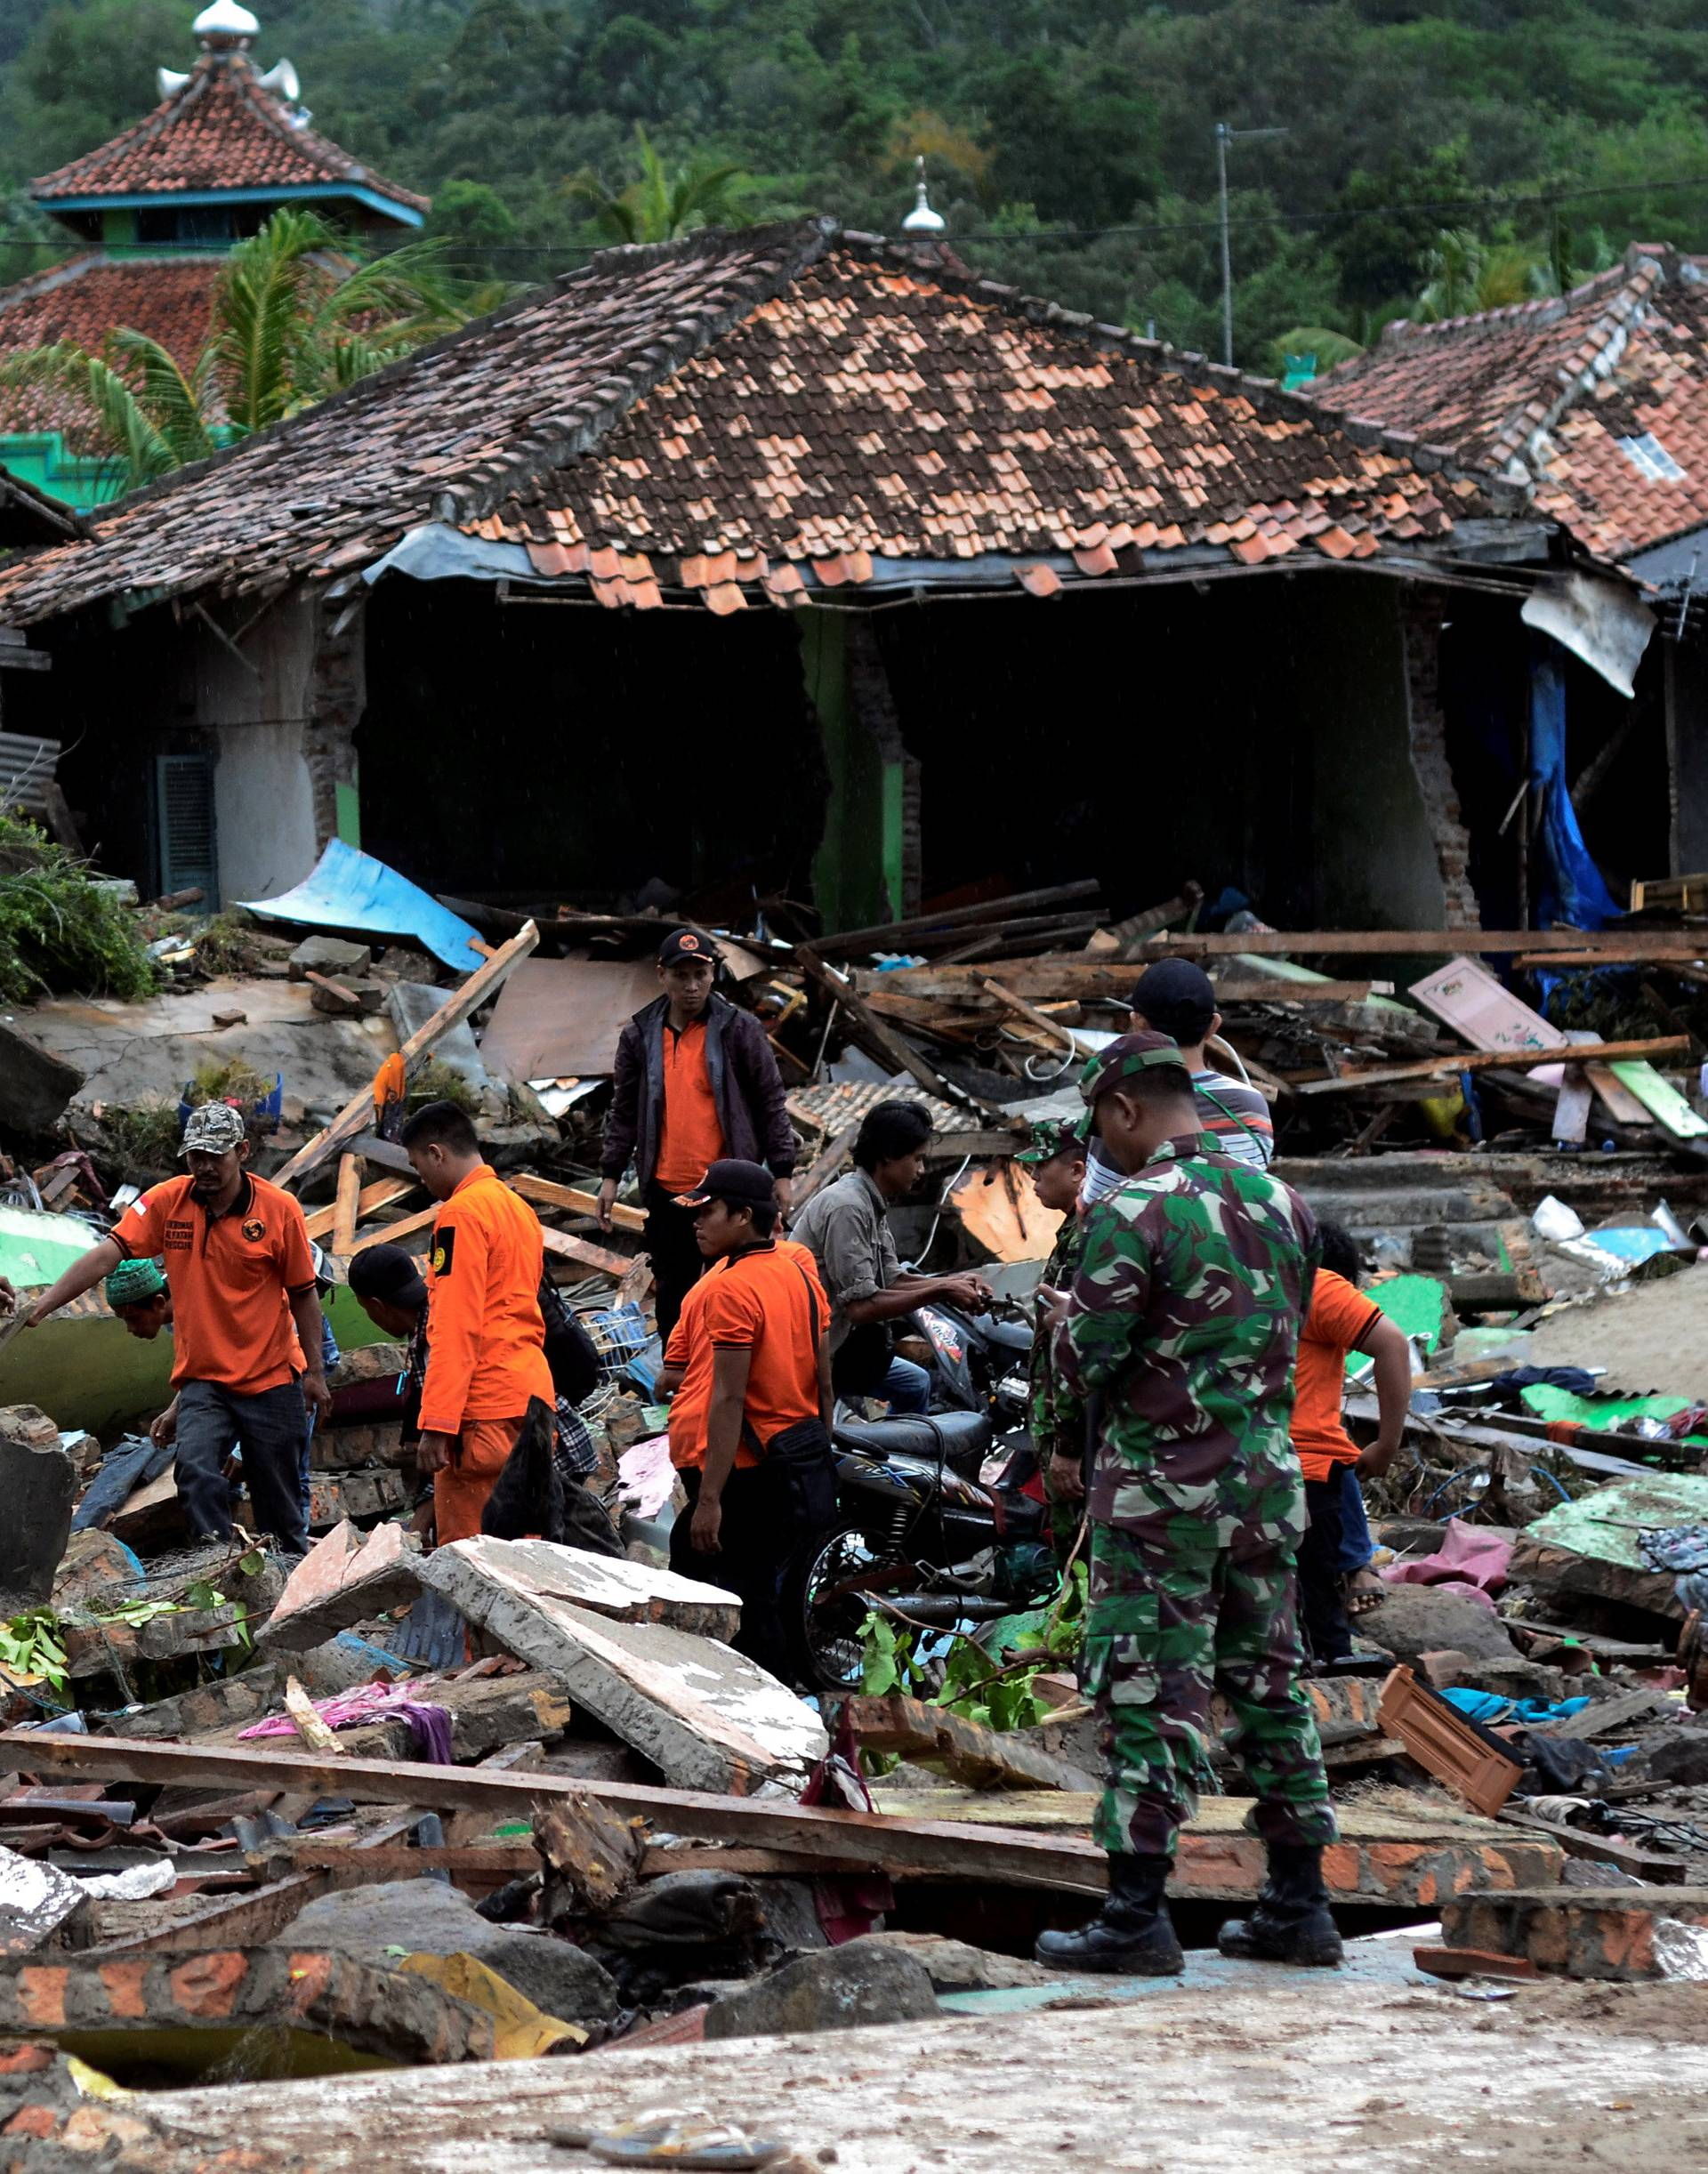 Rescue team members search for victims among debris after a tsunami hit at Rajabasa district in South Lampung